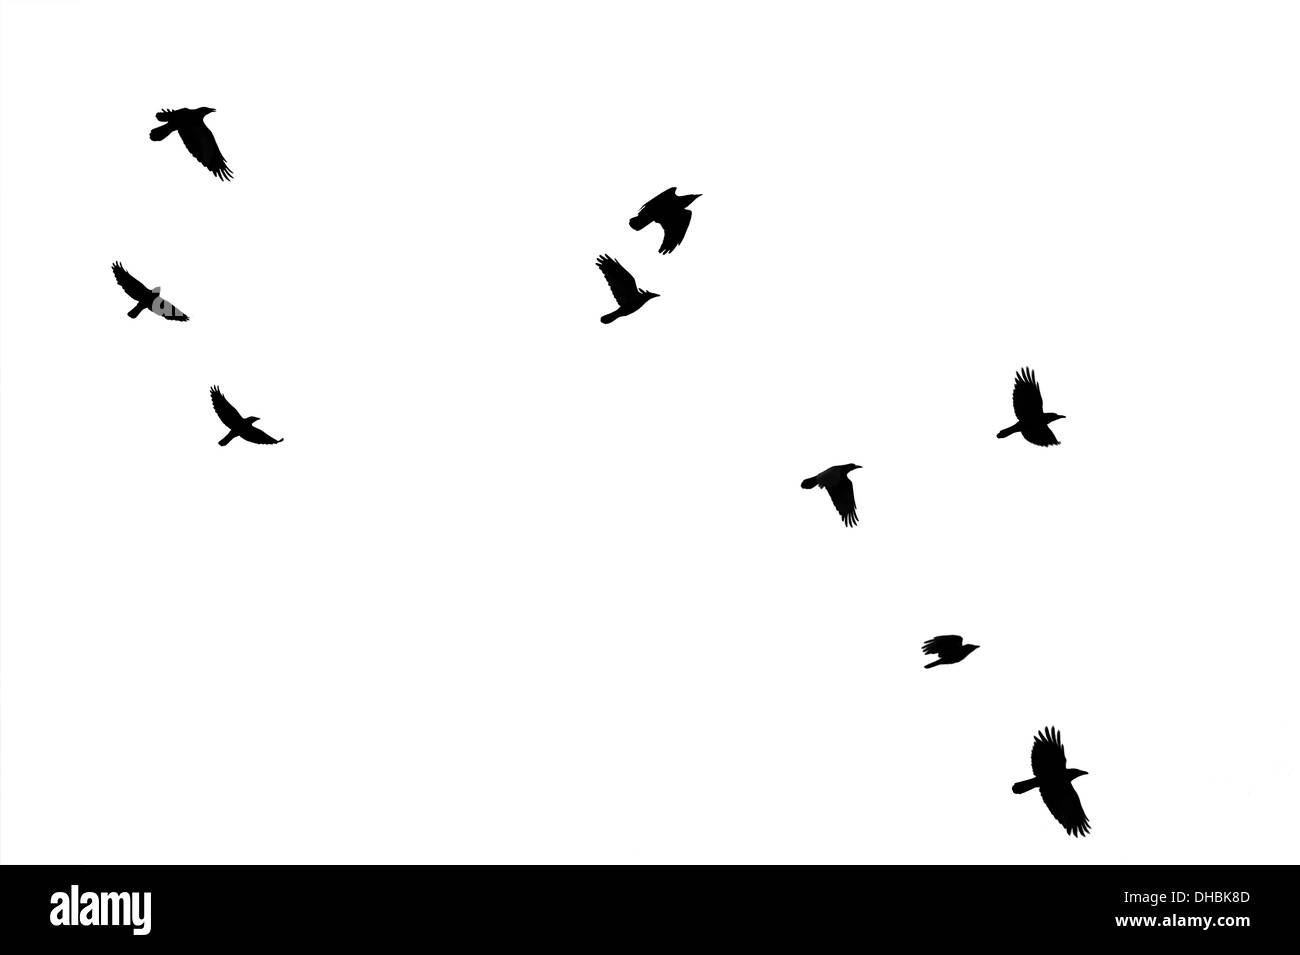 Flock of crows - Stock Image